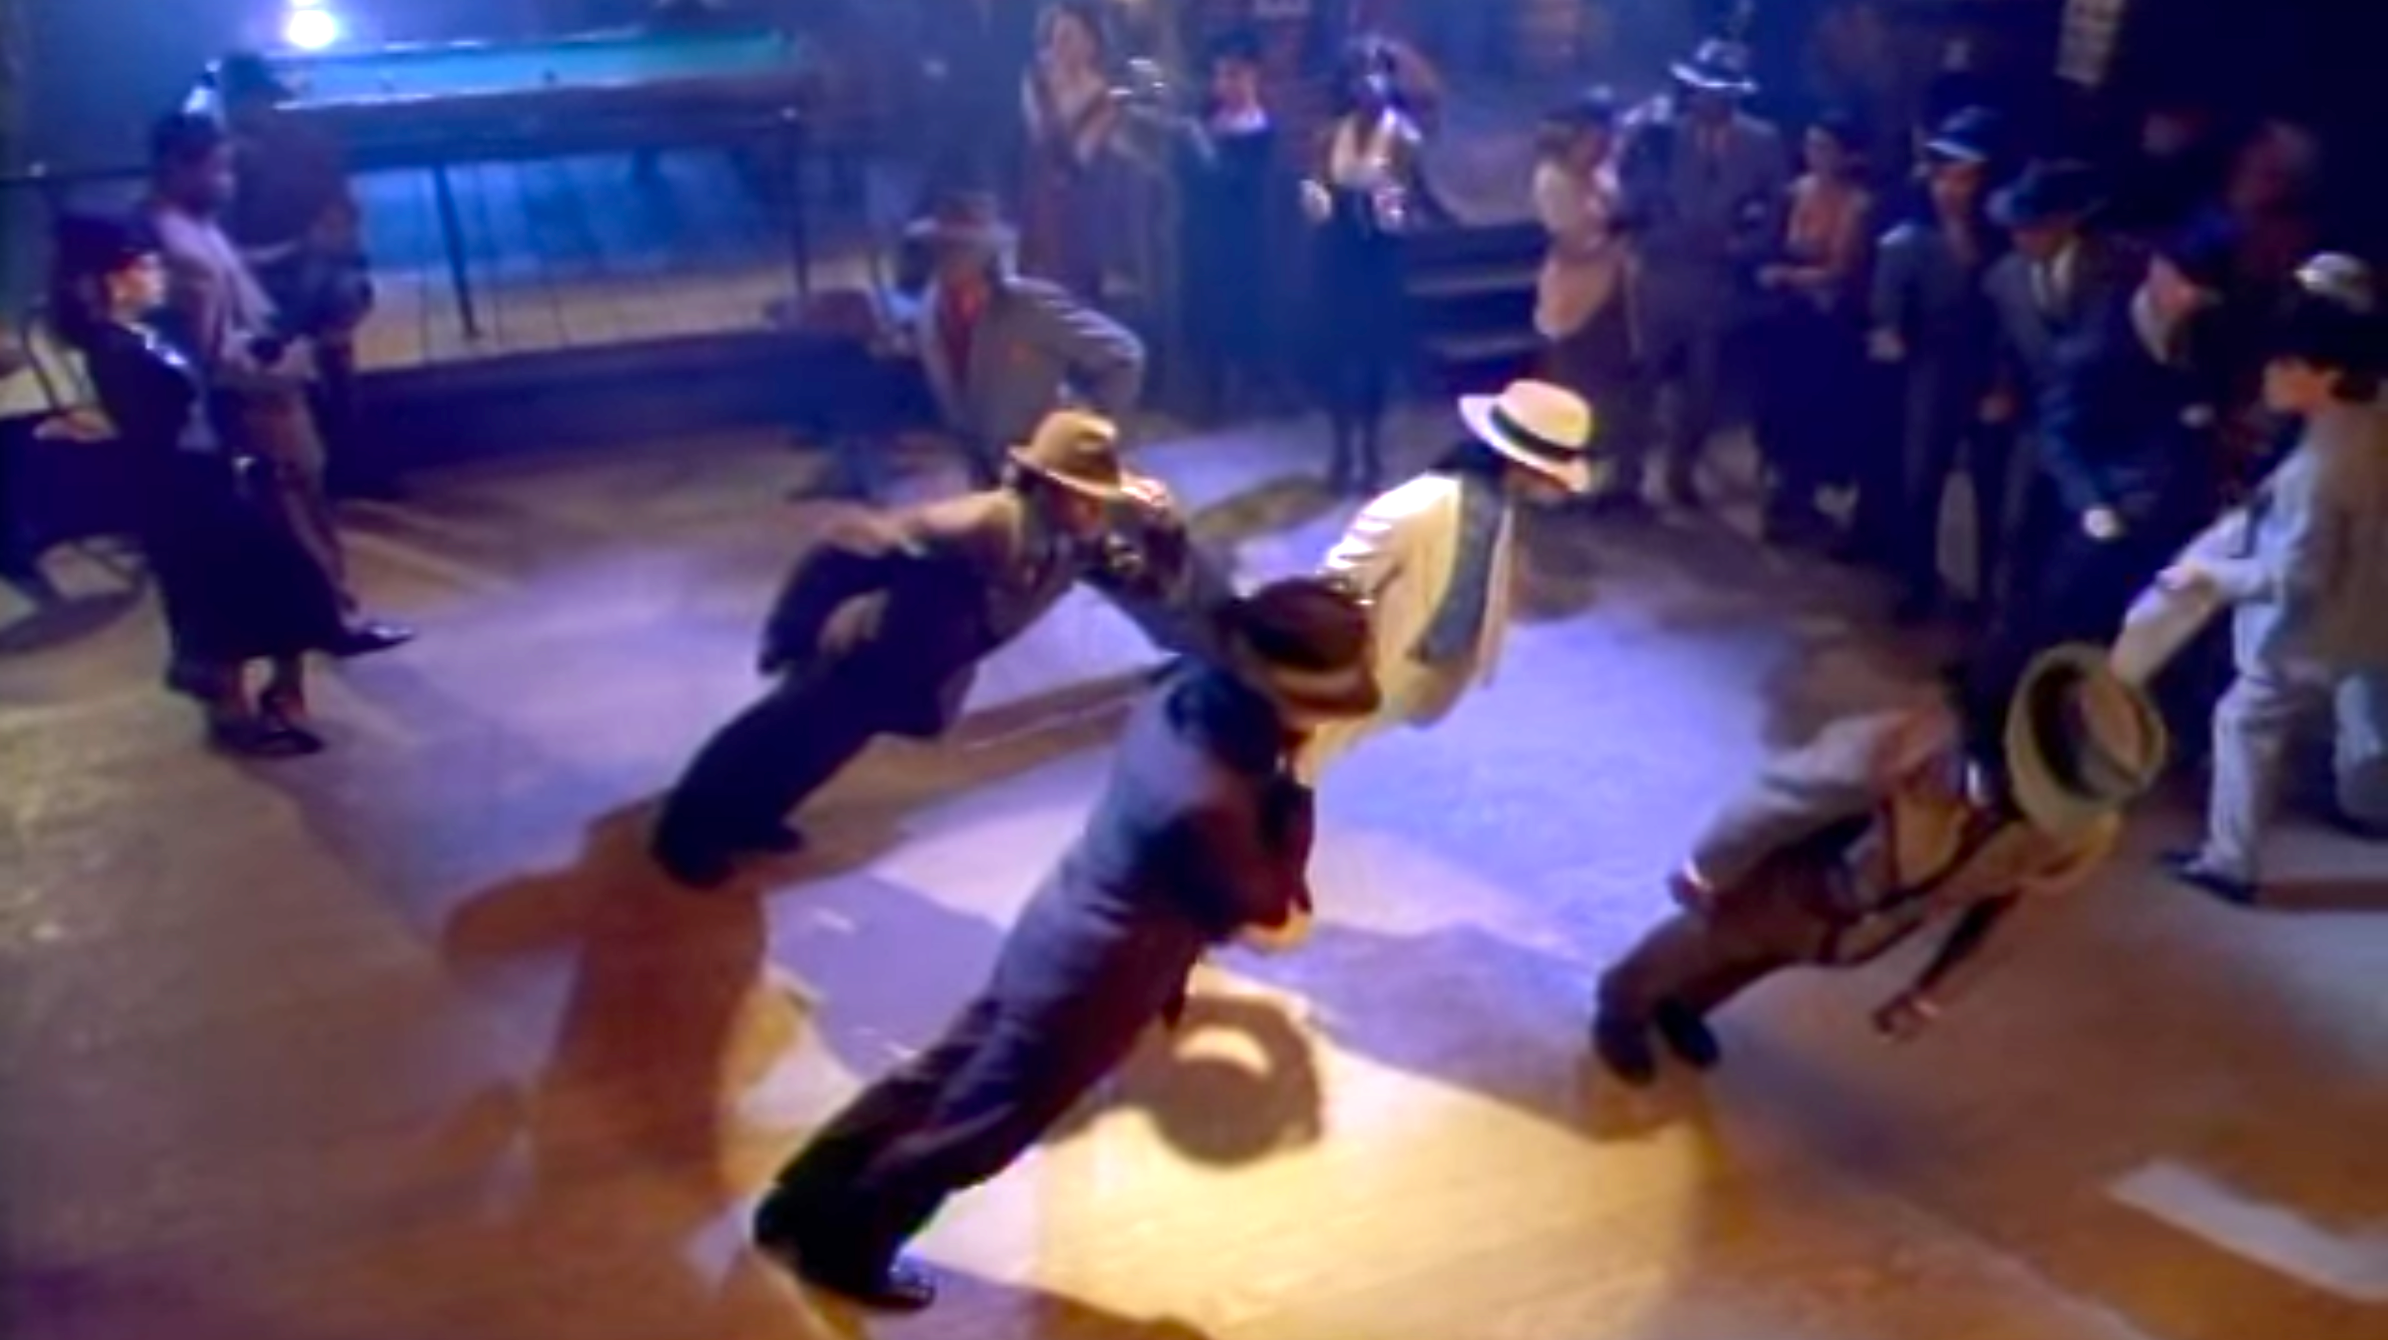 How To Dance Like Michael Jackson: Nail Your Shoes To The Floor